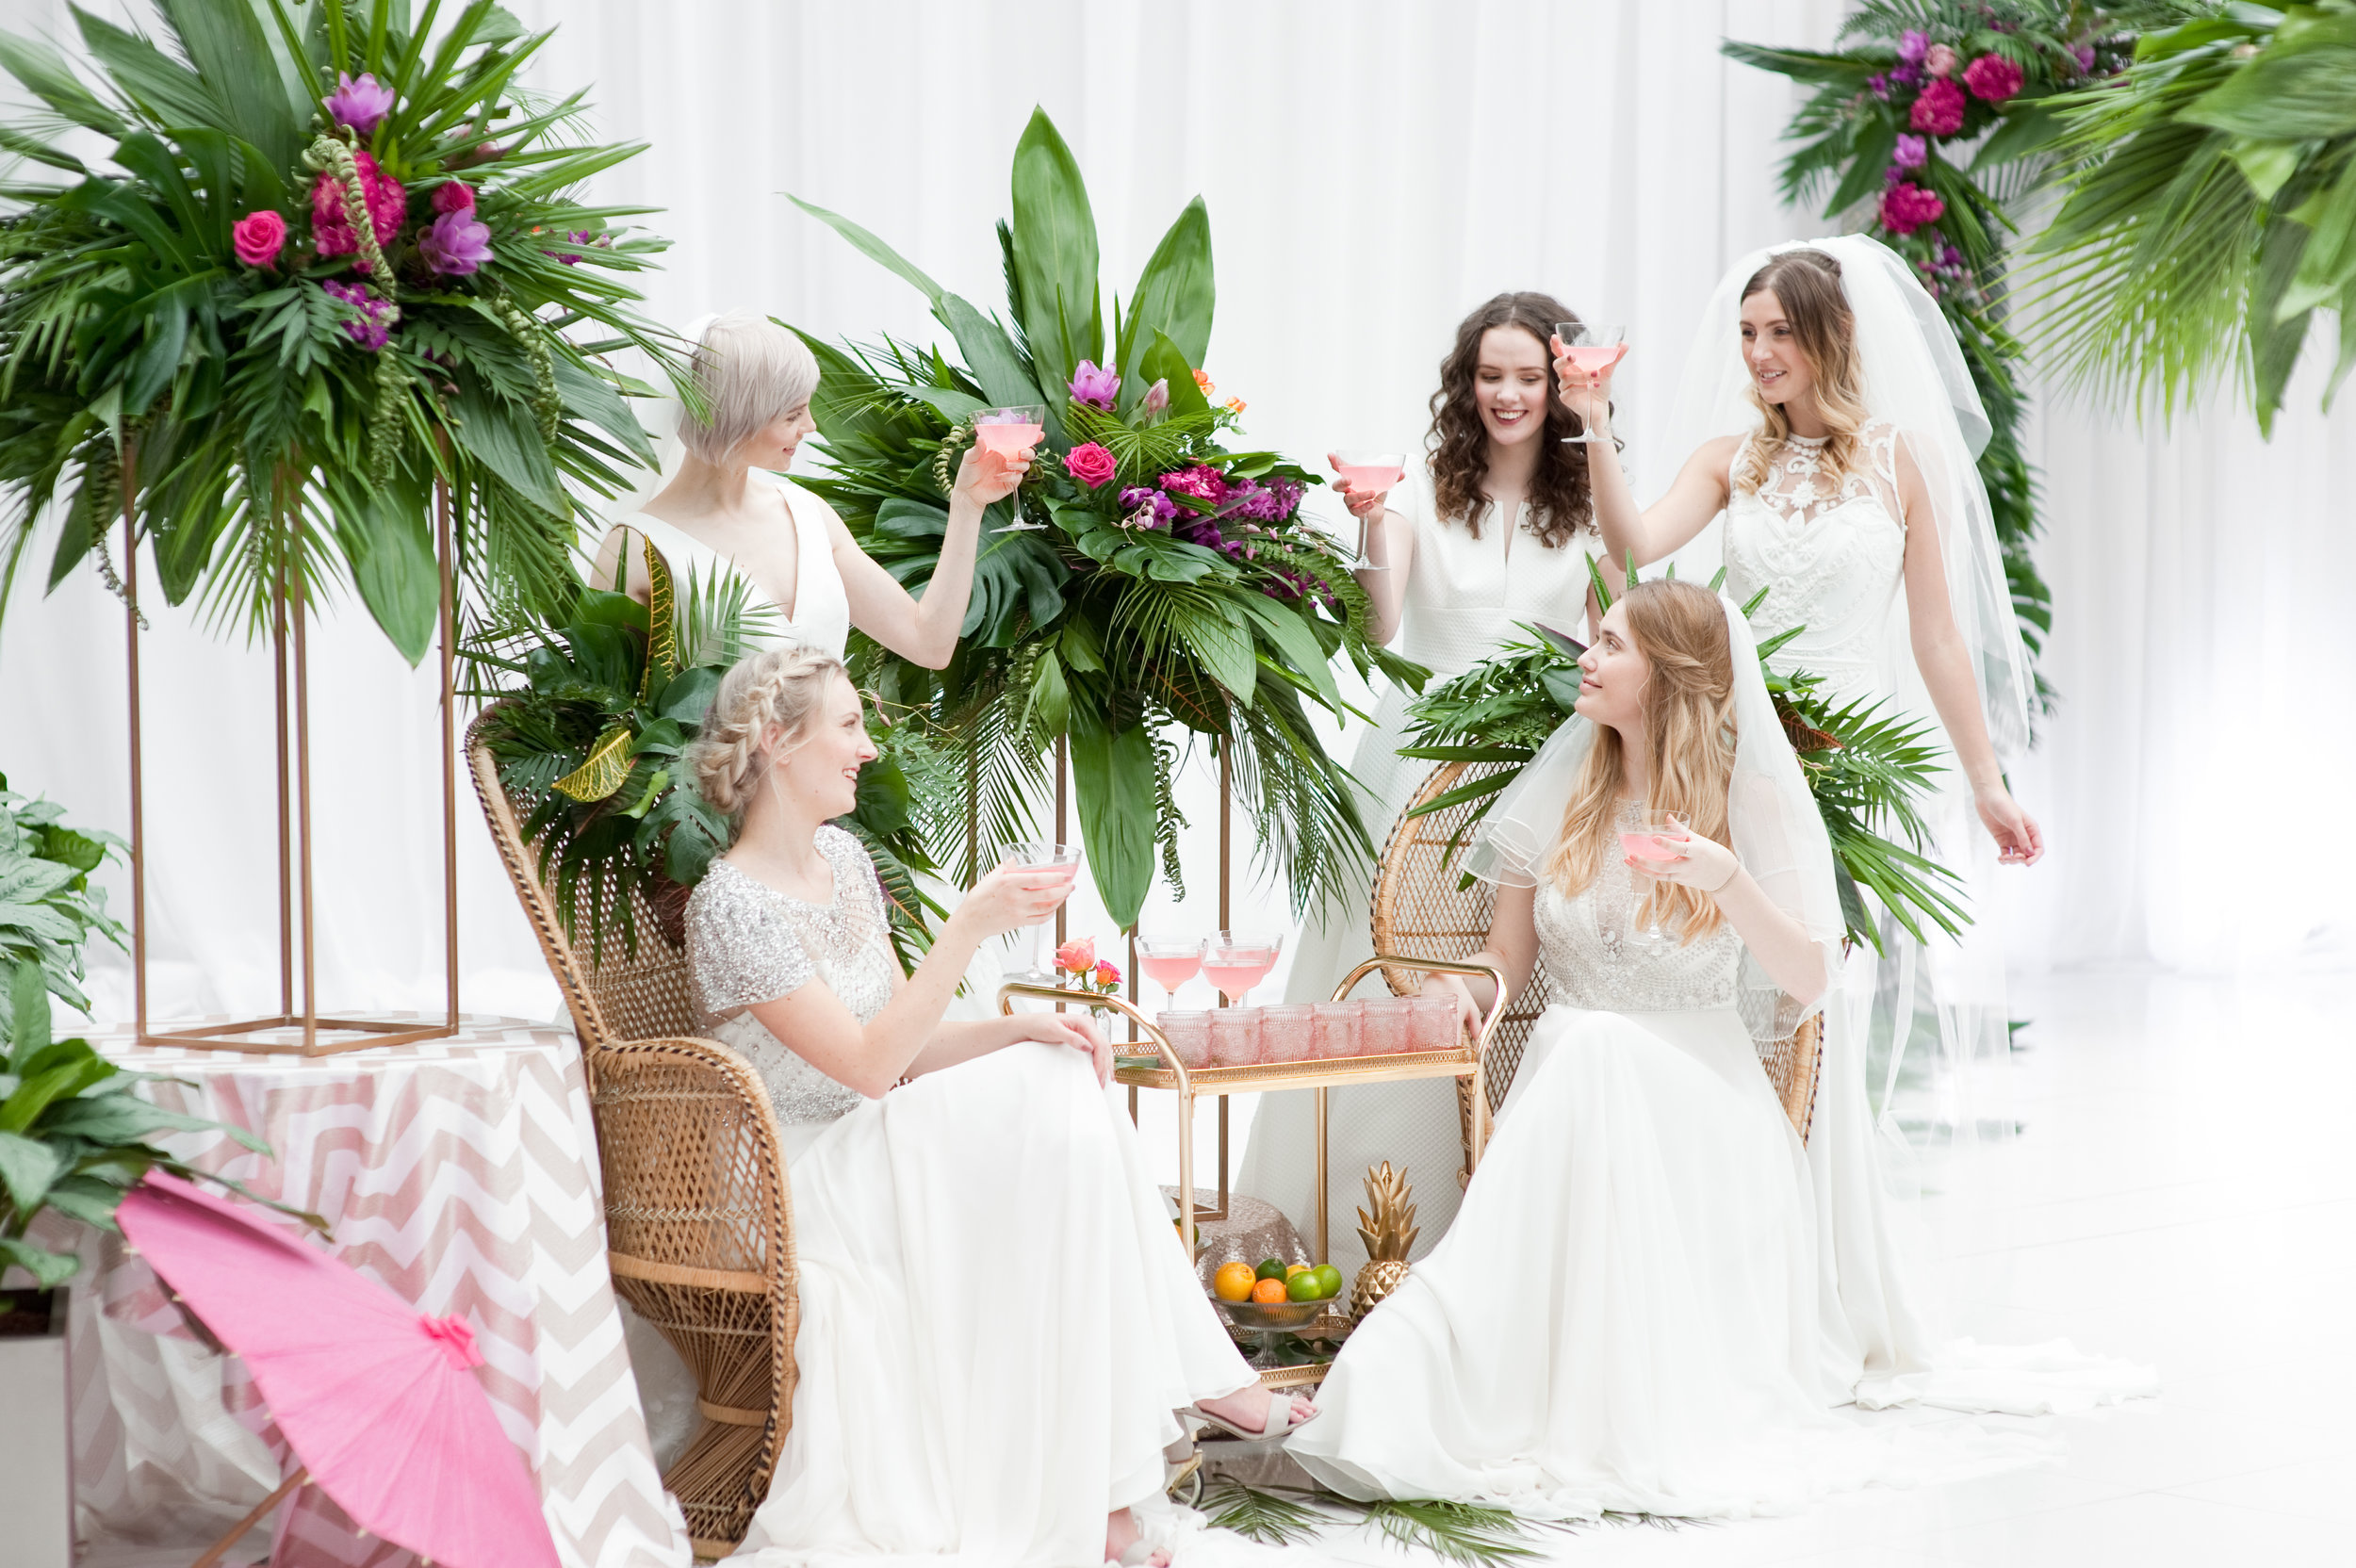 The Prosecco Parlour - Grab your #bridetribe and sip, sip hooray!